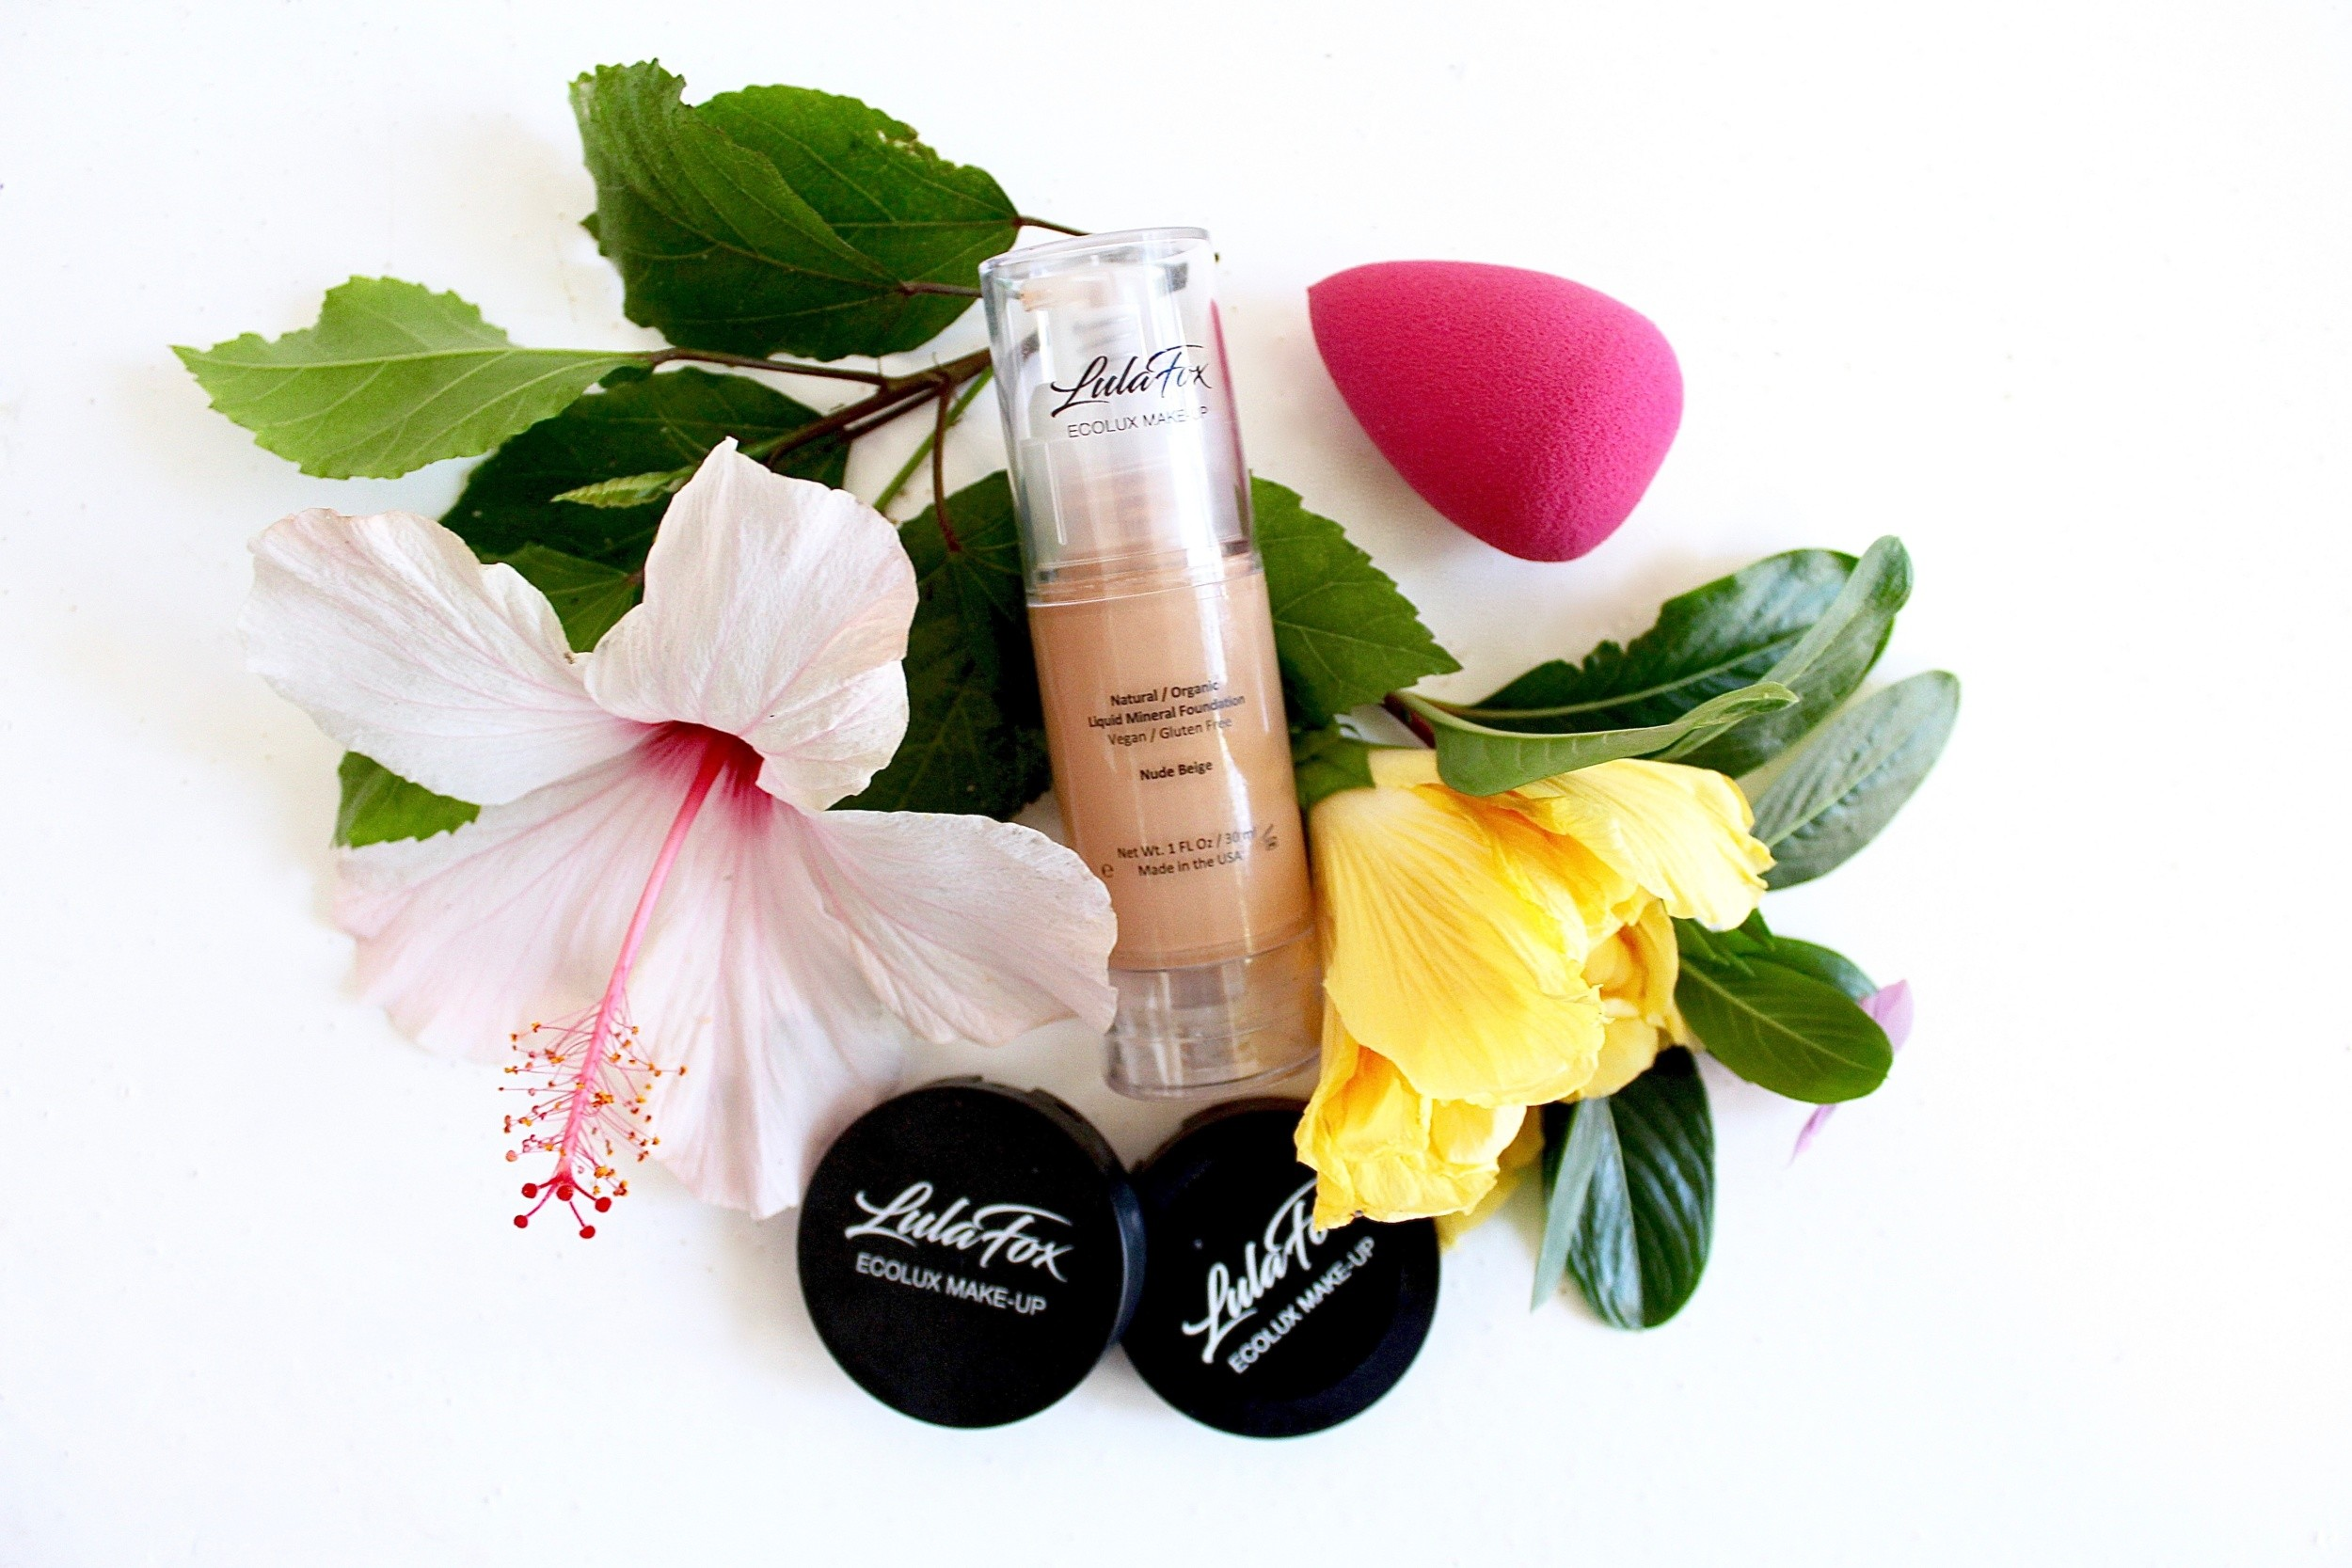 Lula Fox Ecolux Makeup, Lula Fox Ecolux Makeup: Why I am joining the #cleanbeautyrevolution!